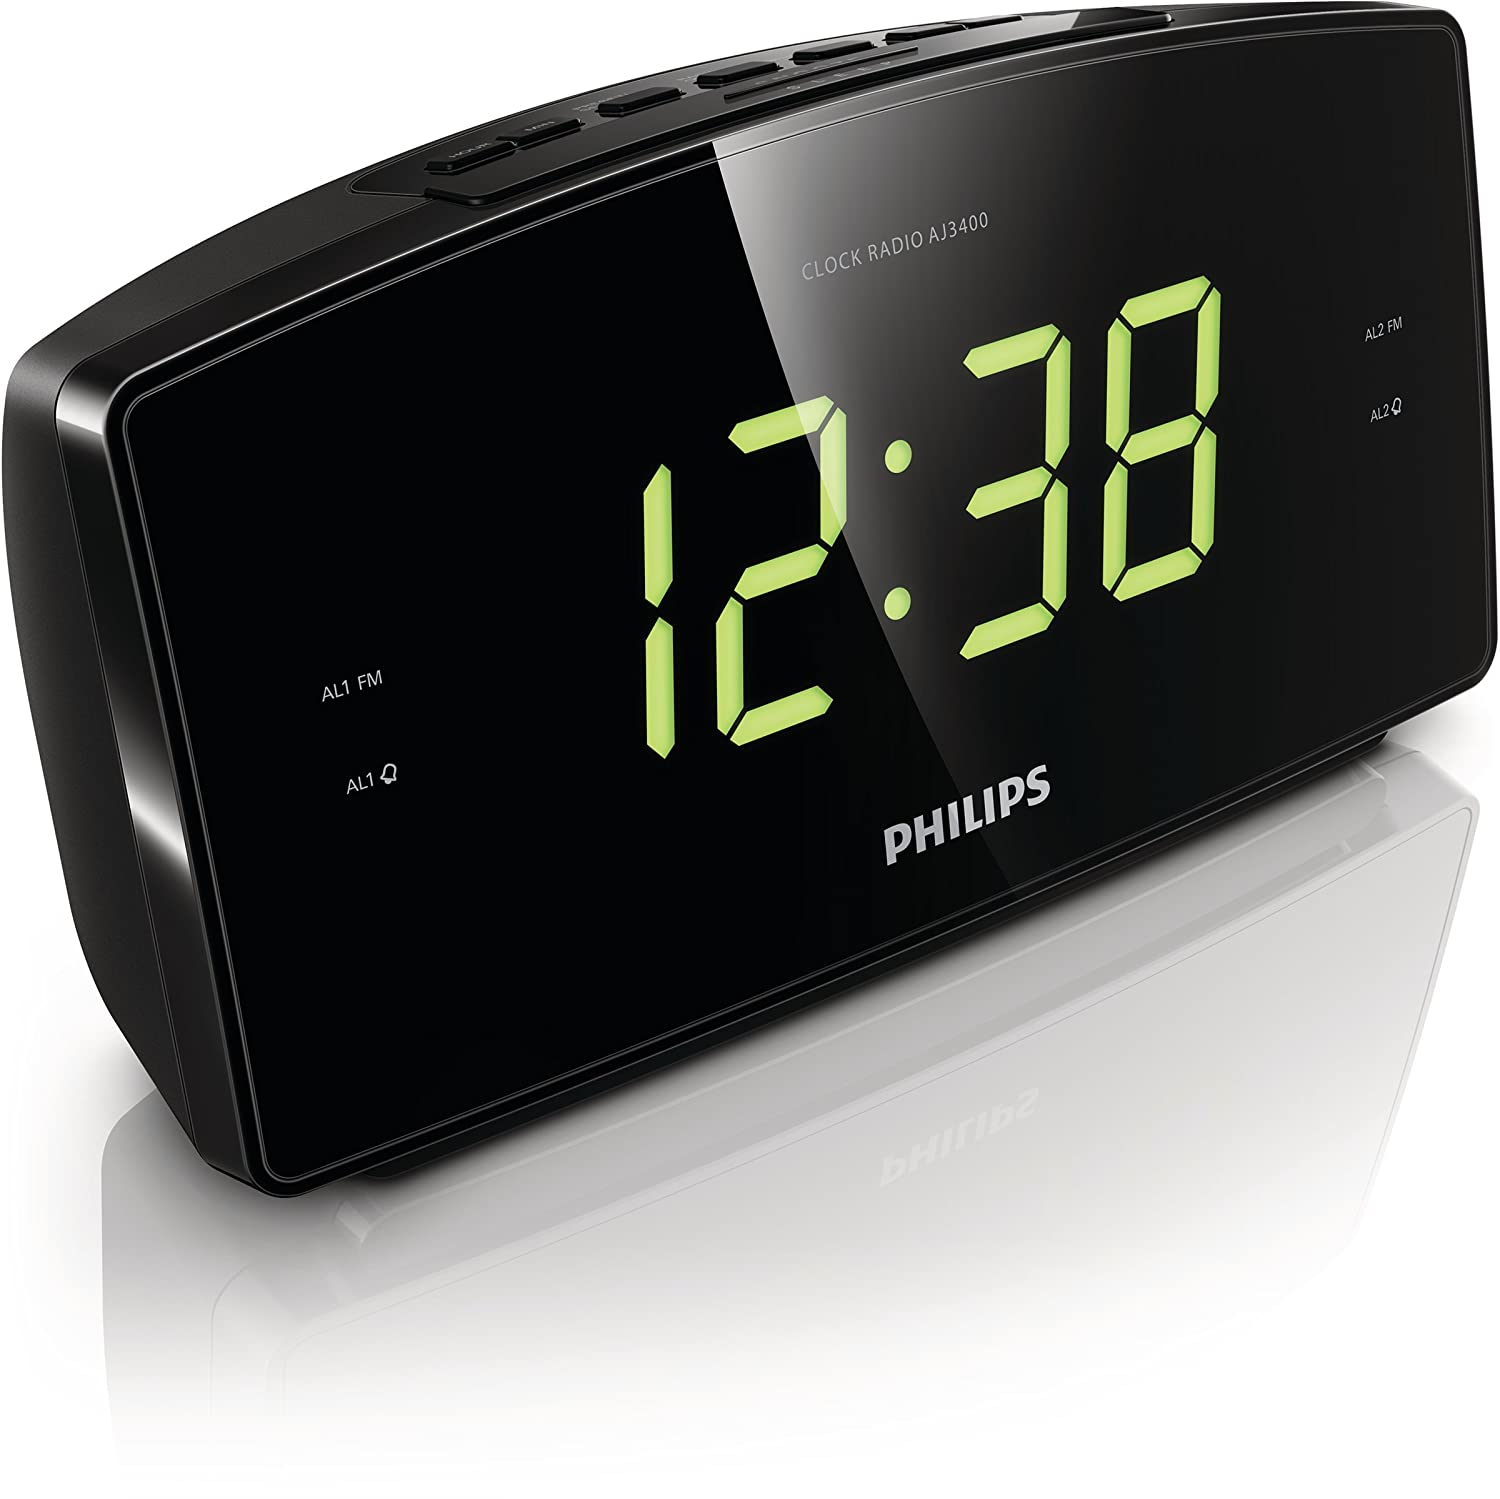 Philips AJ3400/05 - Radio (Reloj, FM, 87,5-108 MHz, 0,4 W, LED, Verde): Amazon.es: Electrónica